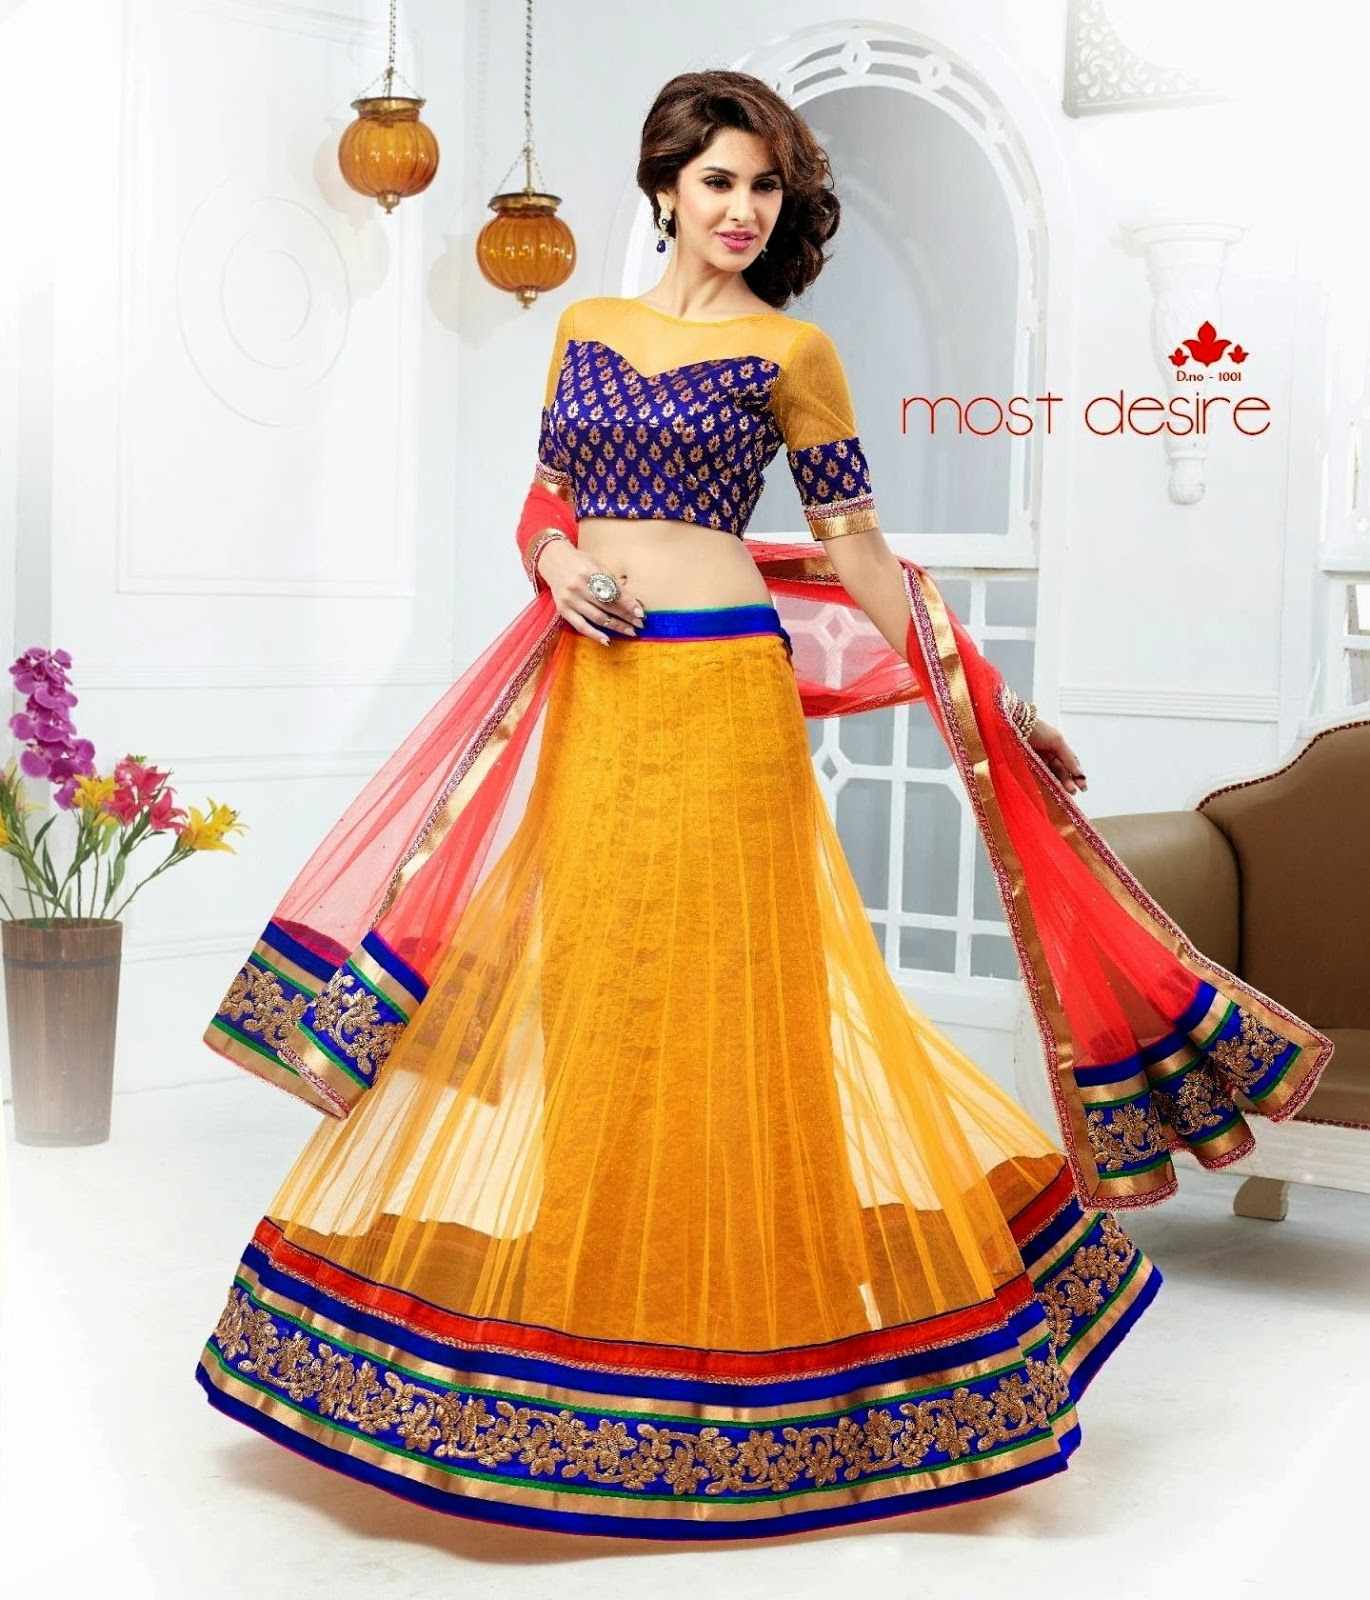 Wedding Lancha Images: Designer Sarees Online,Anarkali Suits Online,Indian Kurtis